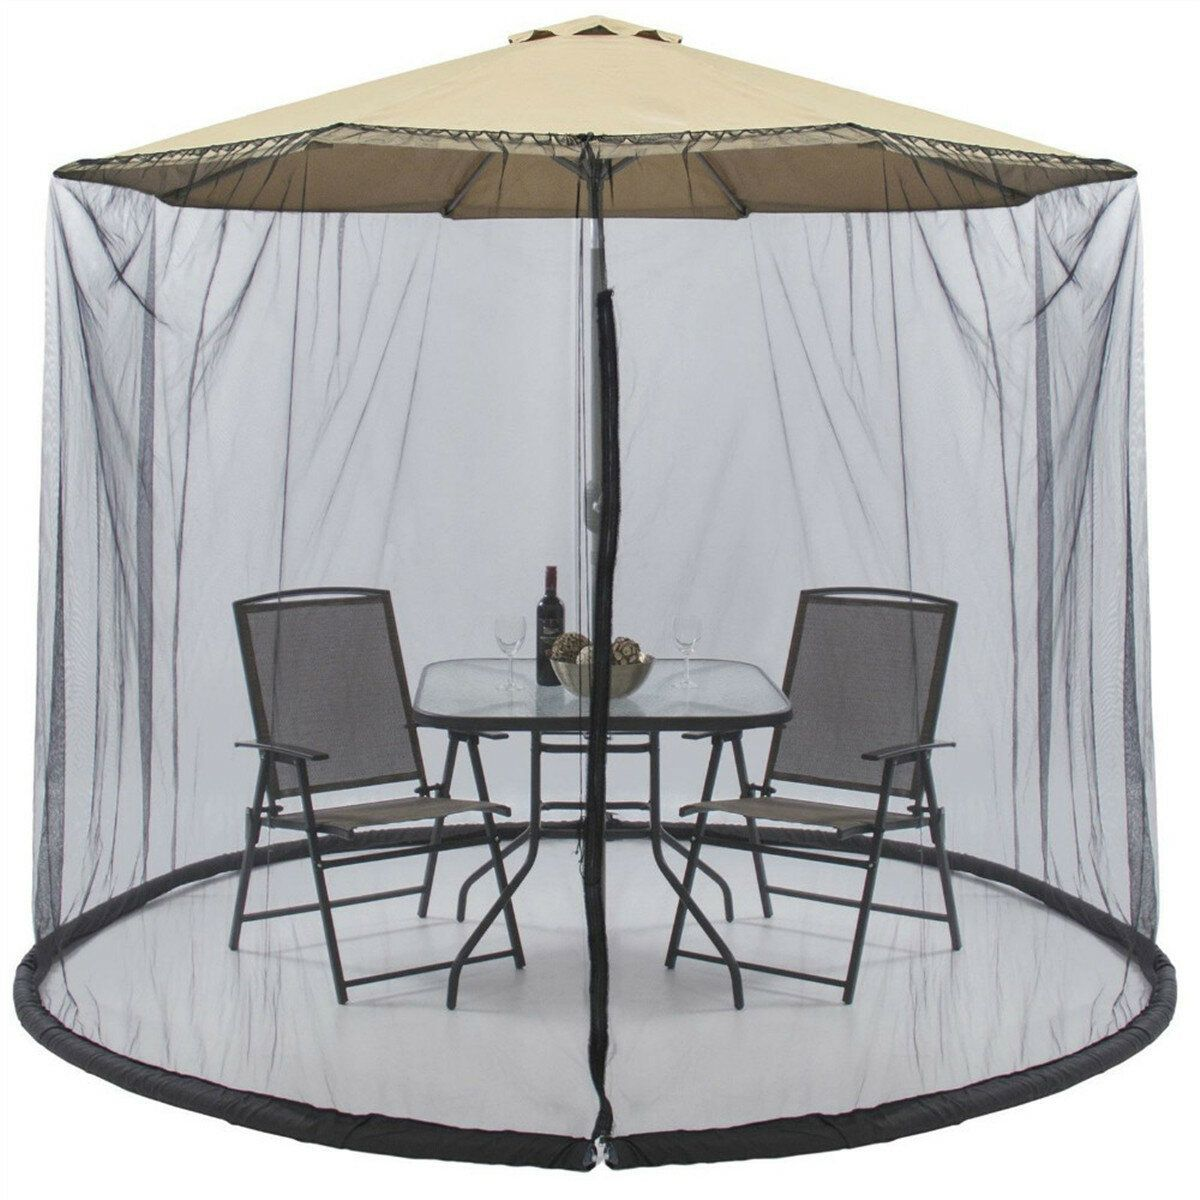 300x230cm Sunshade Mosquito Net Courtyard Net Cover Umbrella Mosquito Net